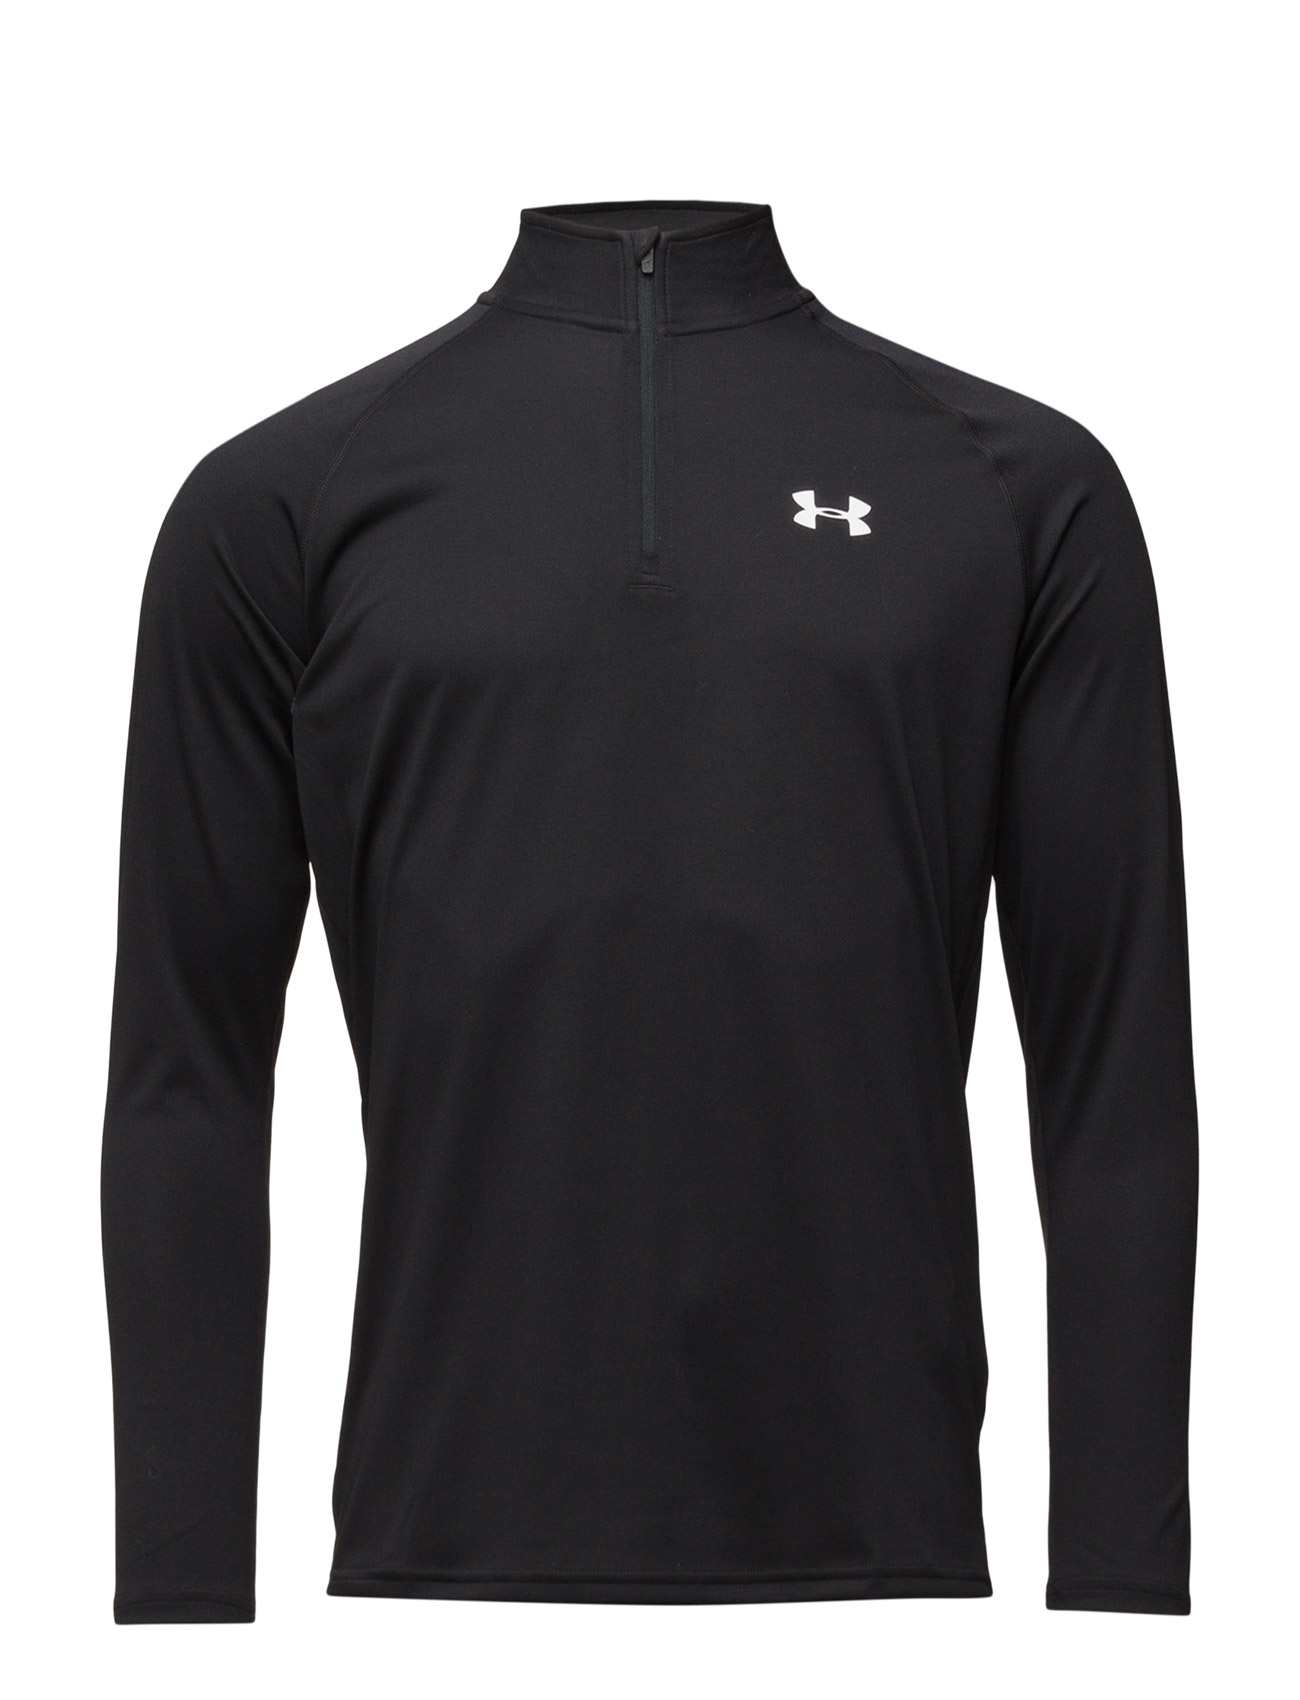 Ua Tech 1/4 Zip Under Armour Sports toppe til Herrer i Sort